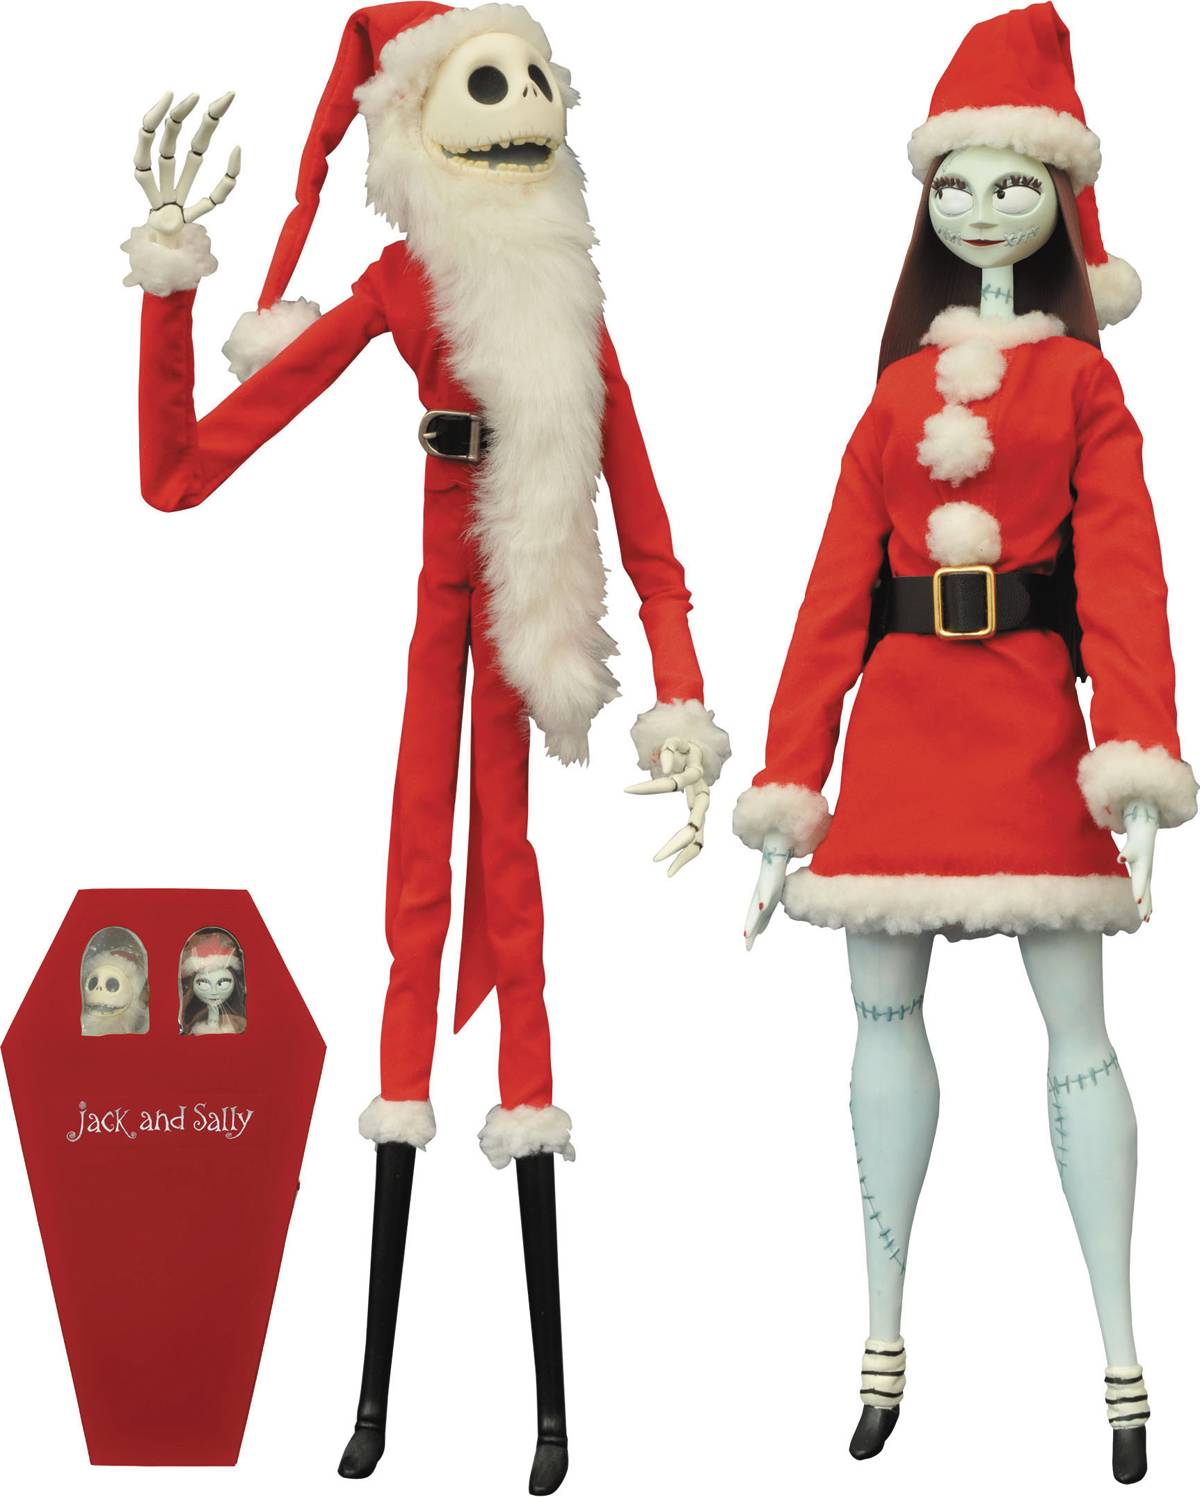 Jack and Sally Are Ready to Fill Mr. Sandy Claws\' Boots This Year